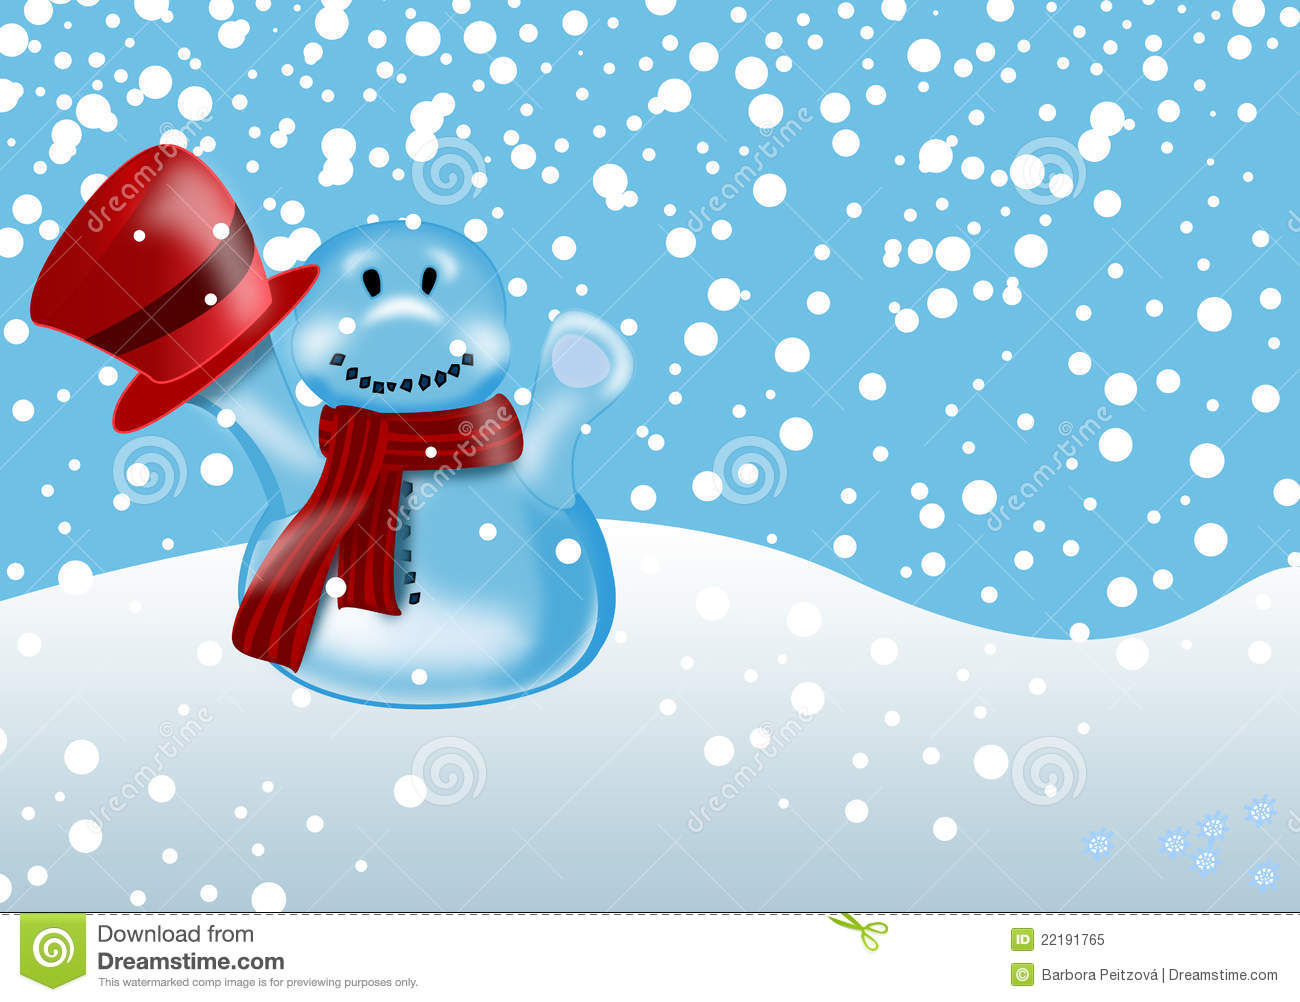 Winter Illustration With Snowman Royalty Free Stock Photo - Image ...